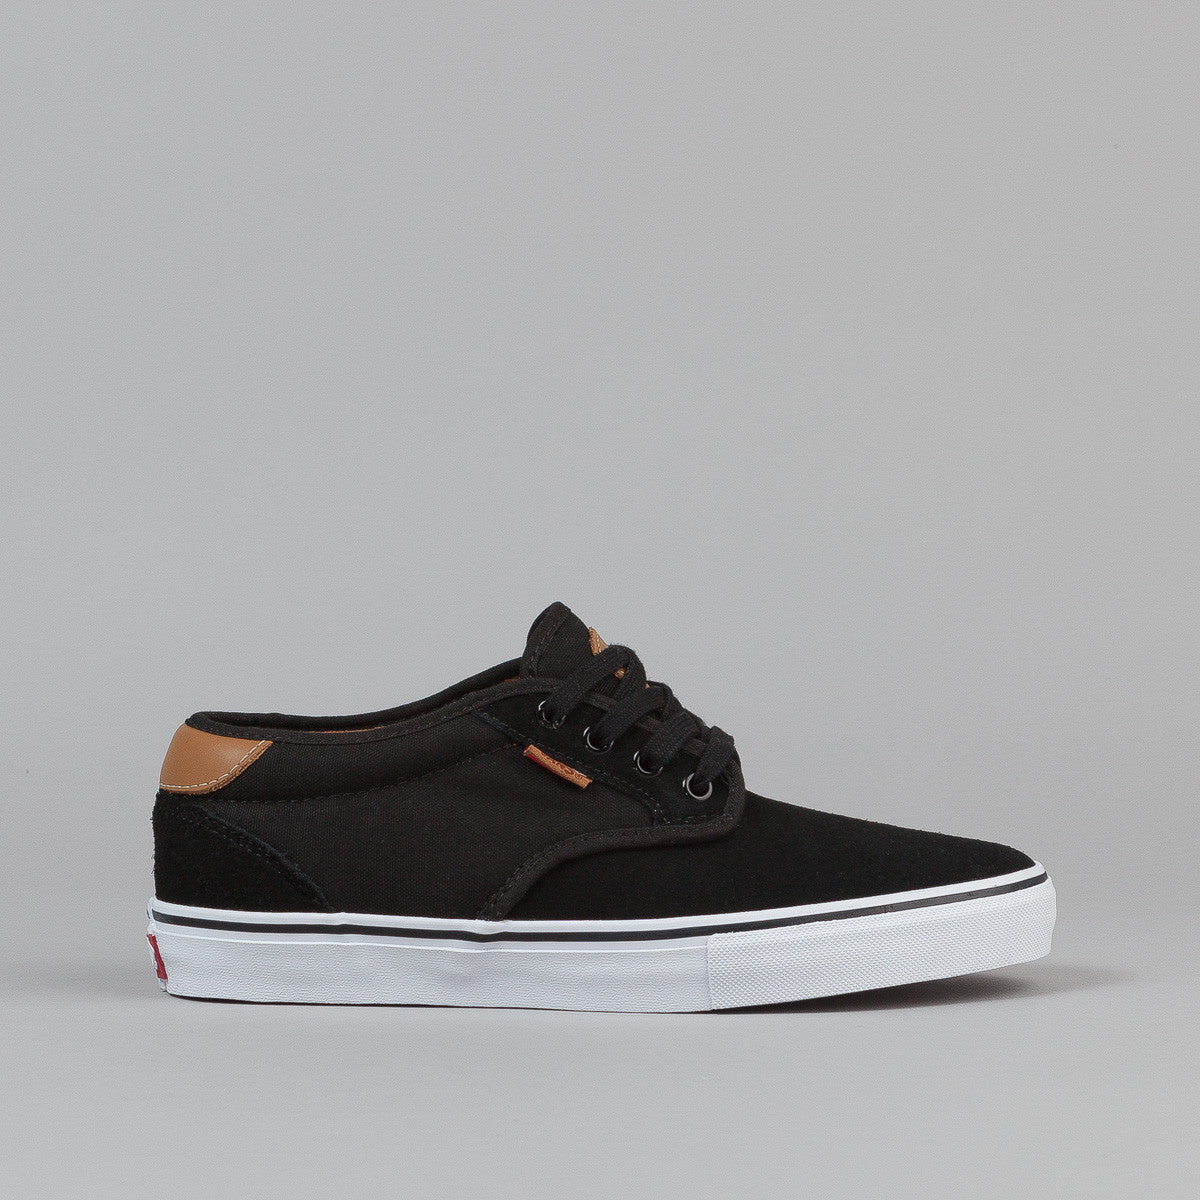 Vans Chima Ferguson Pro Shoes - Black / White